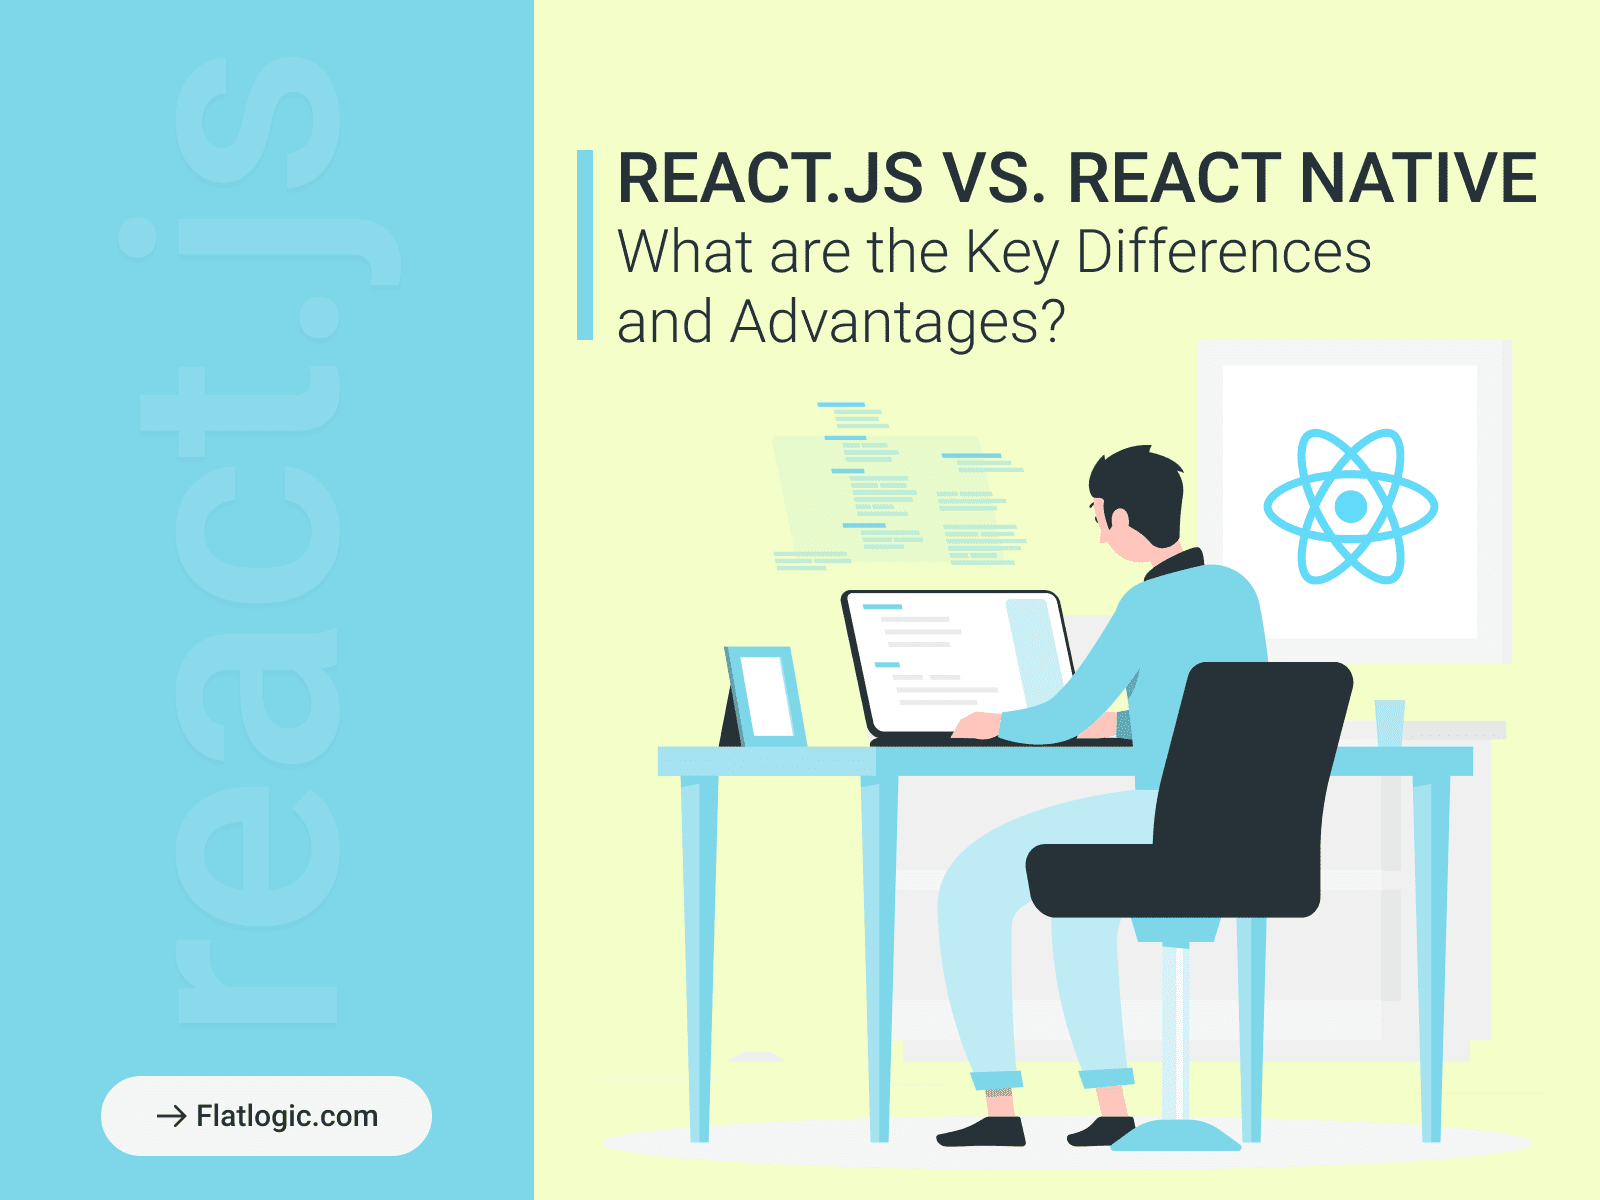 React.js vs. React Native. What are the Key Differences and Advantages?